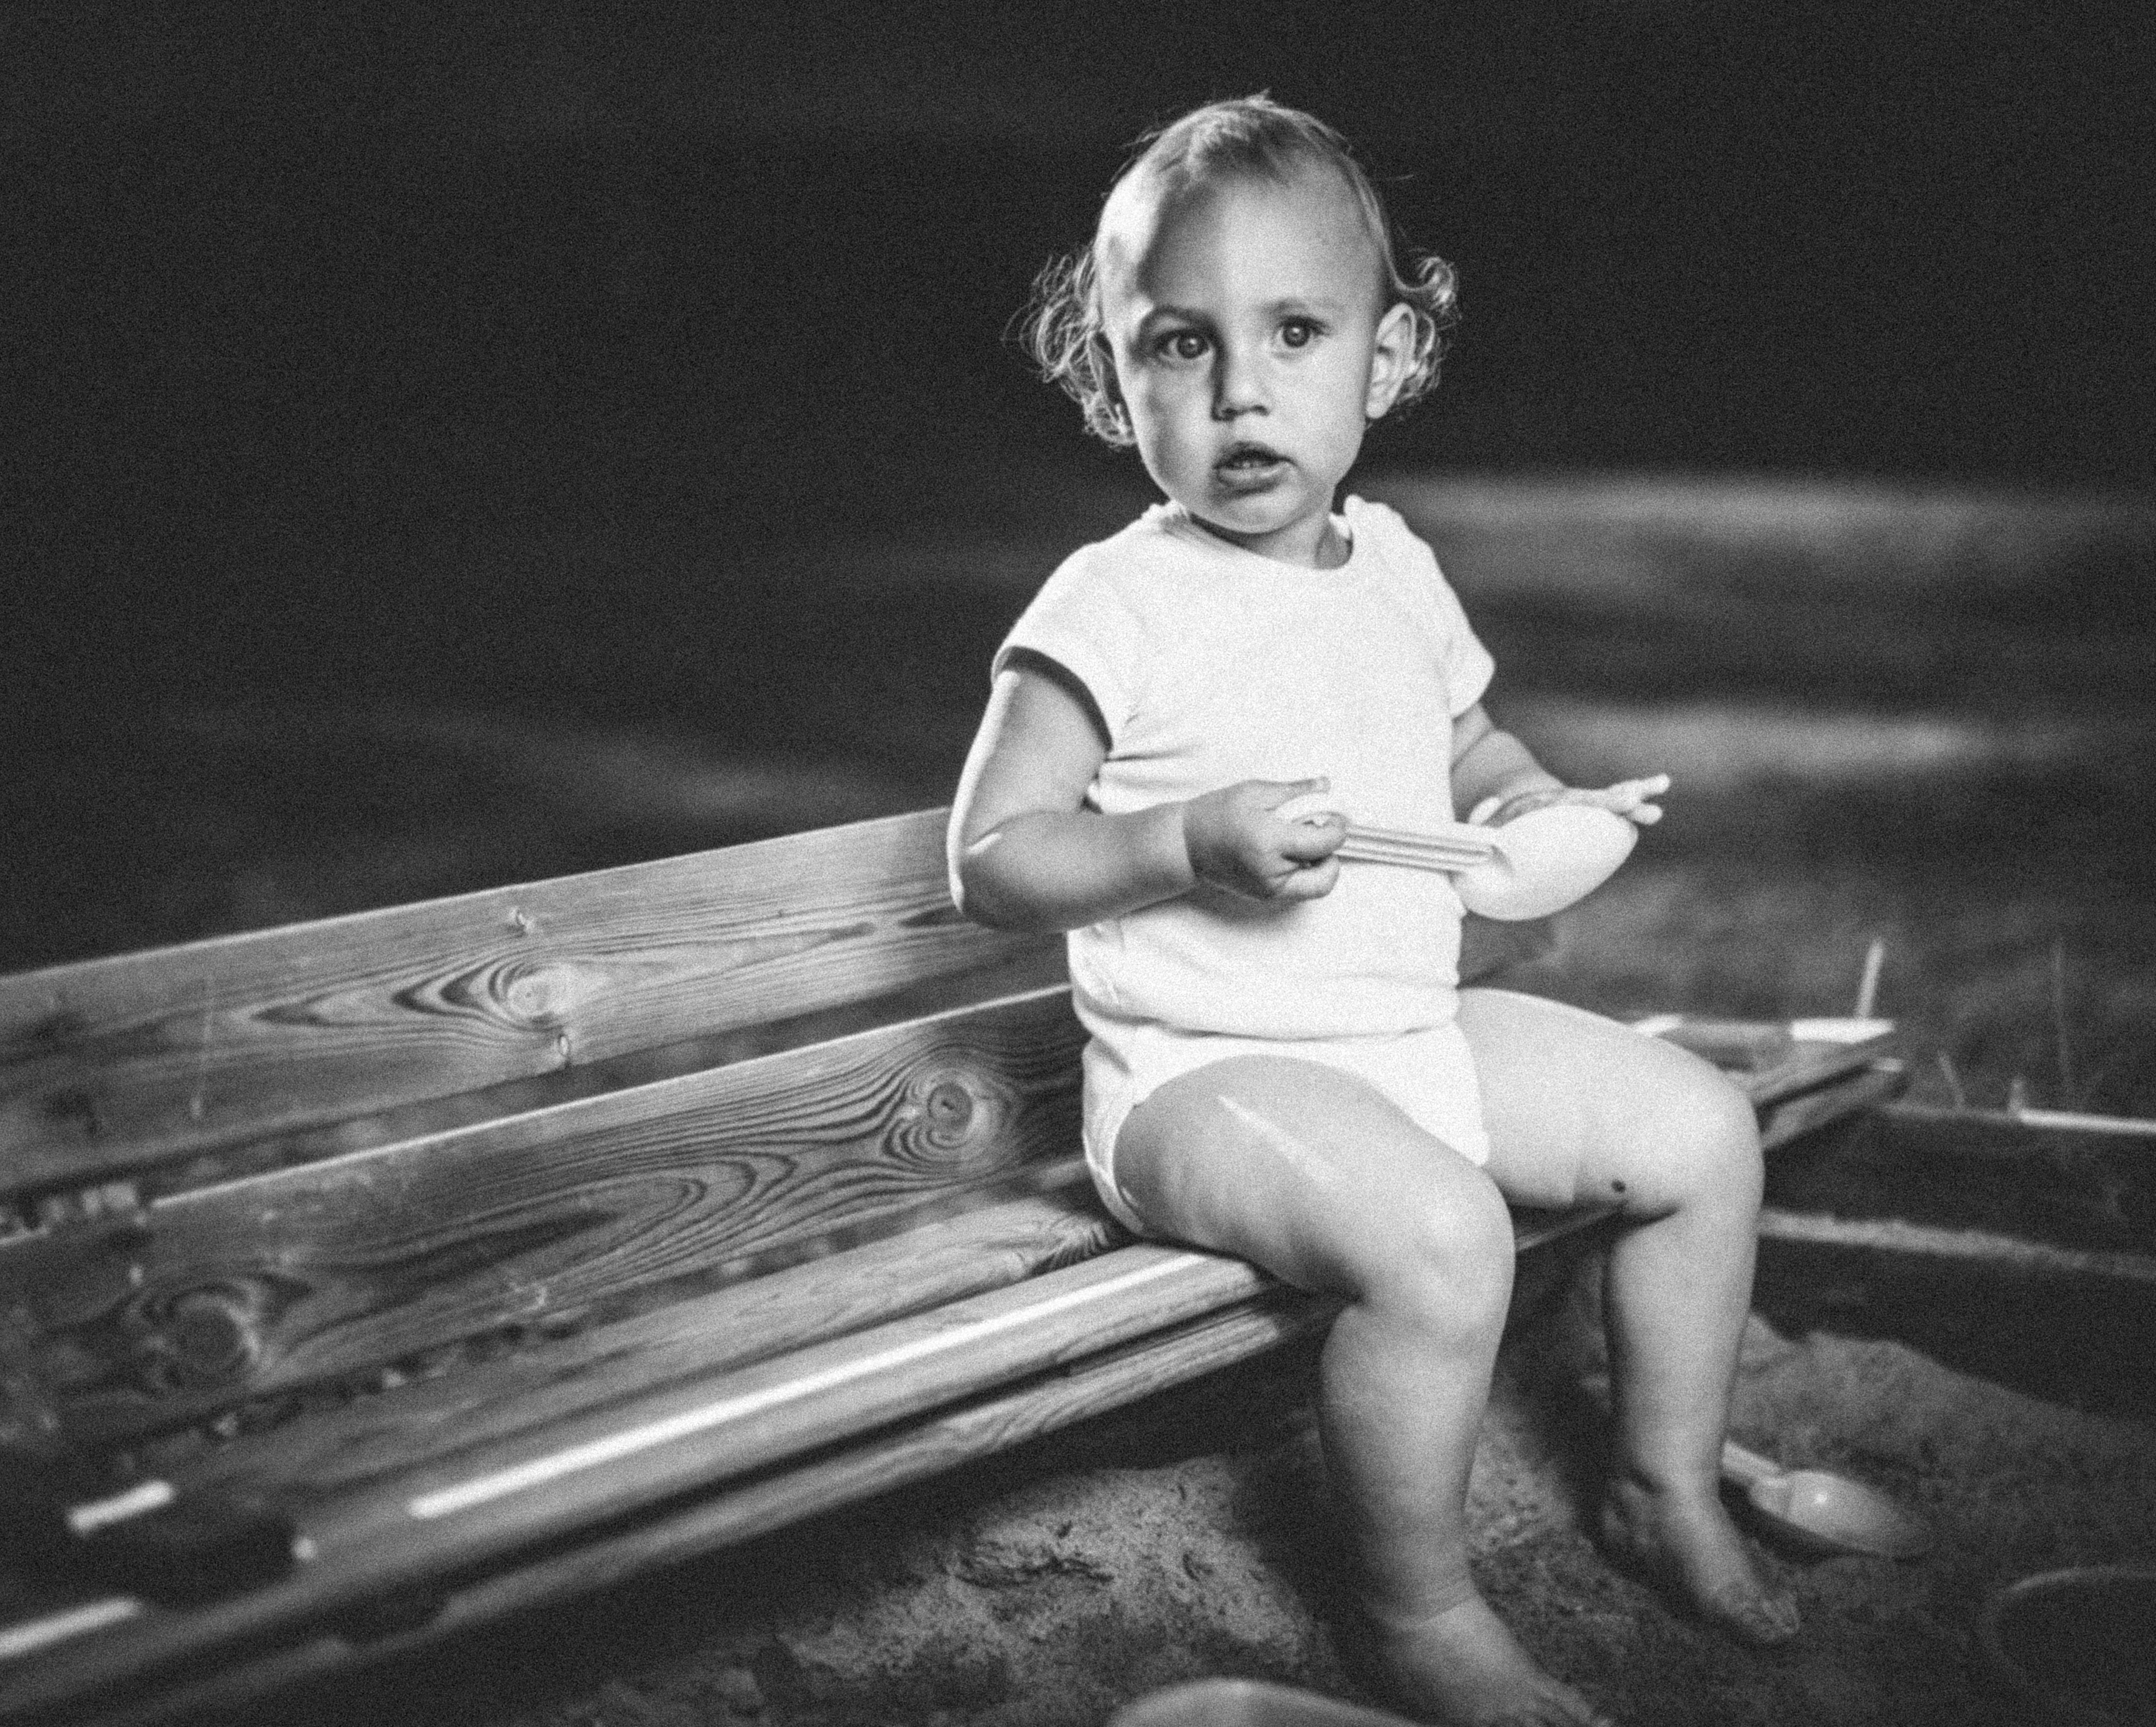 grayscale photography of toddler sitting on benchg